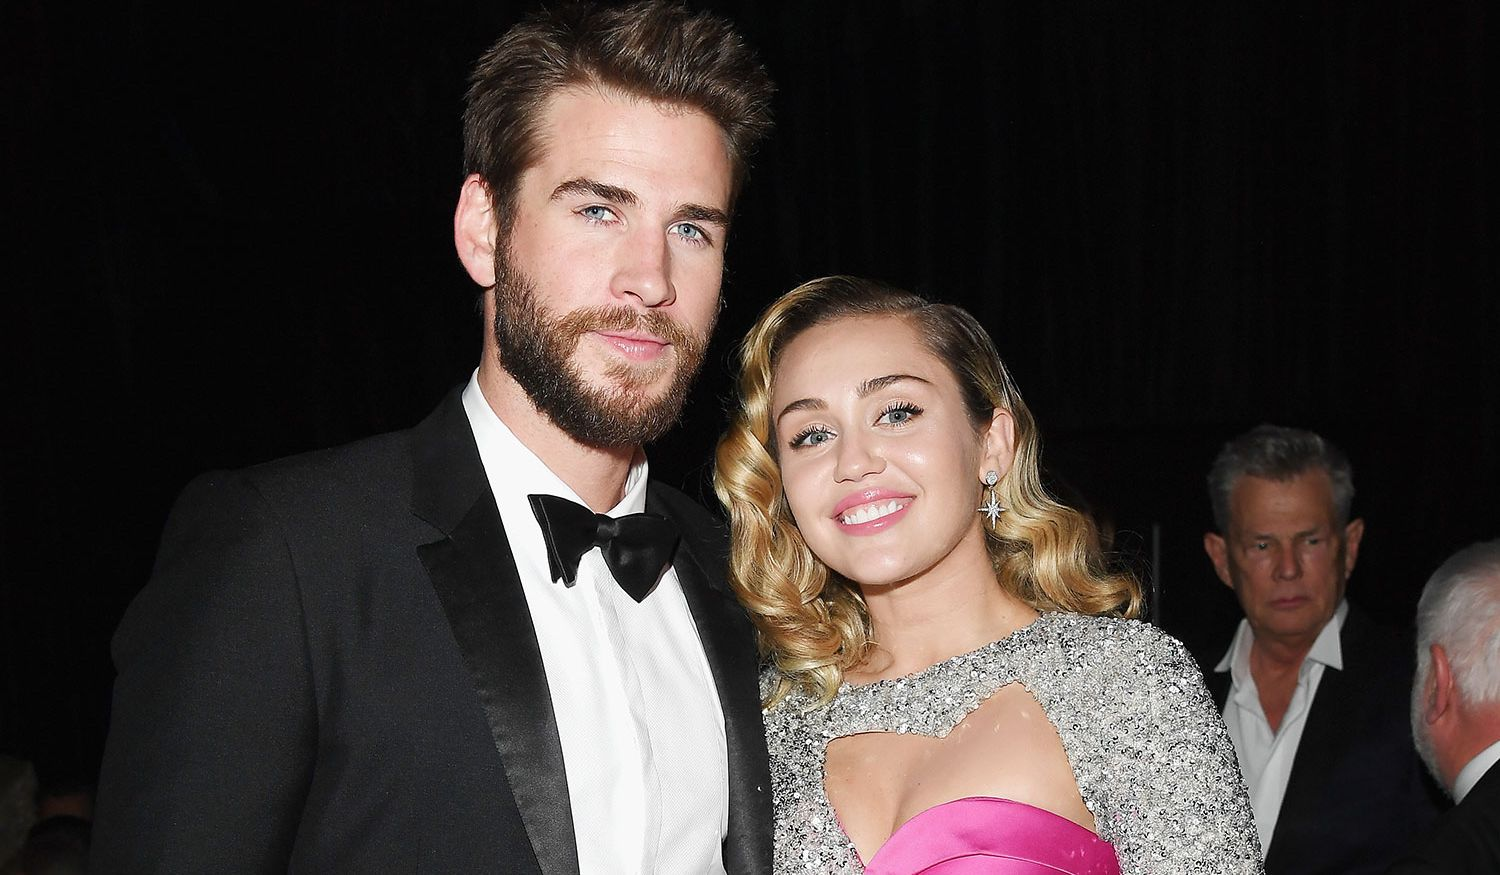 Miley Cyrus Shares Never-Before-Seen Pics From Her And Liam Hemsworth's Wedding